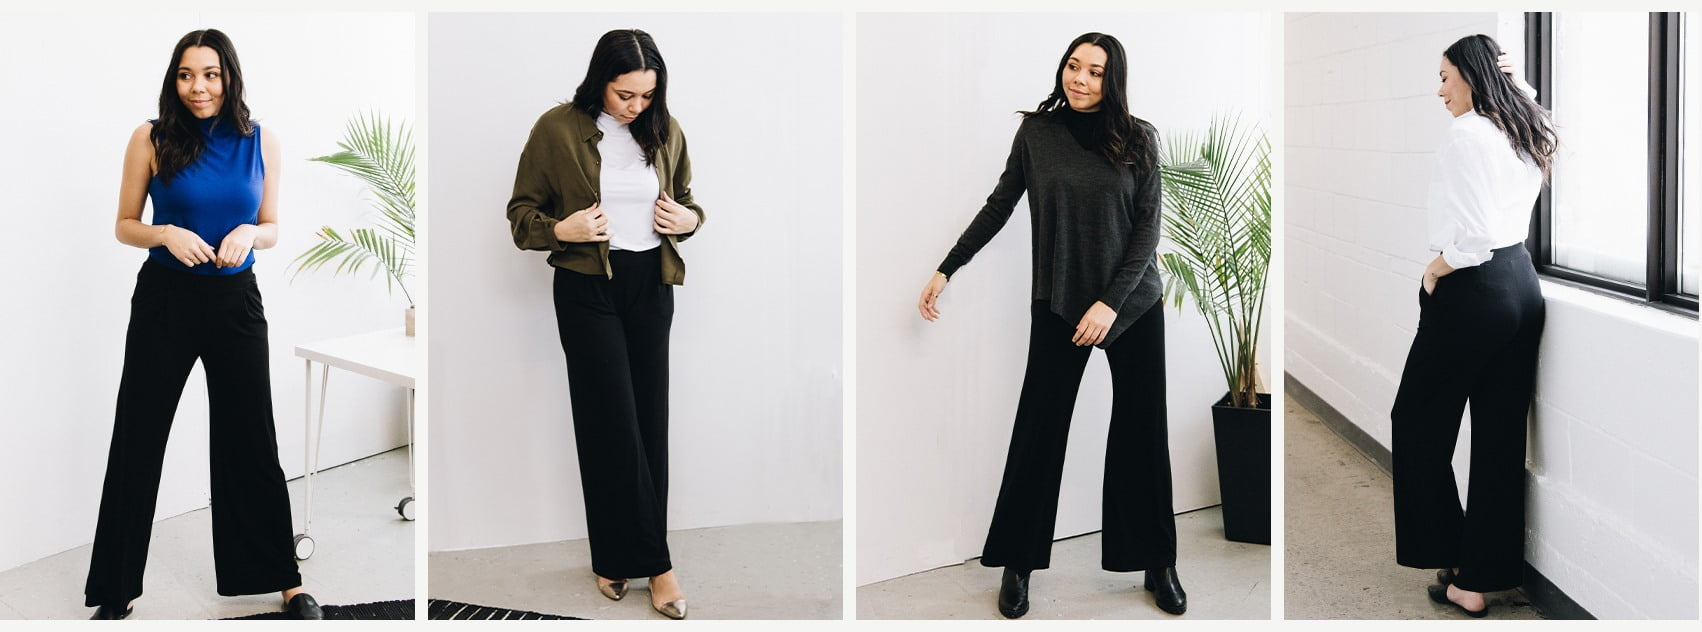 4 images of a woman in different dressy sweatsuits